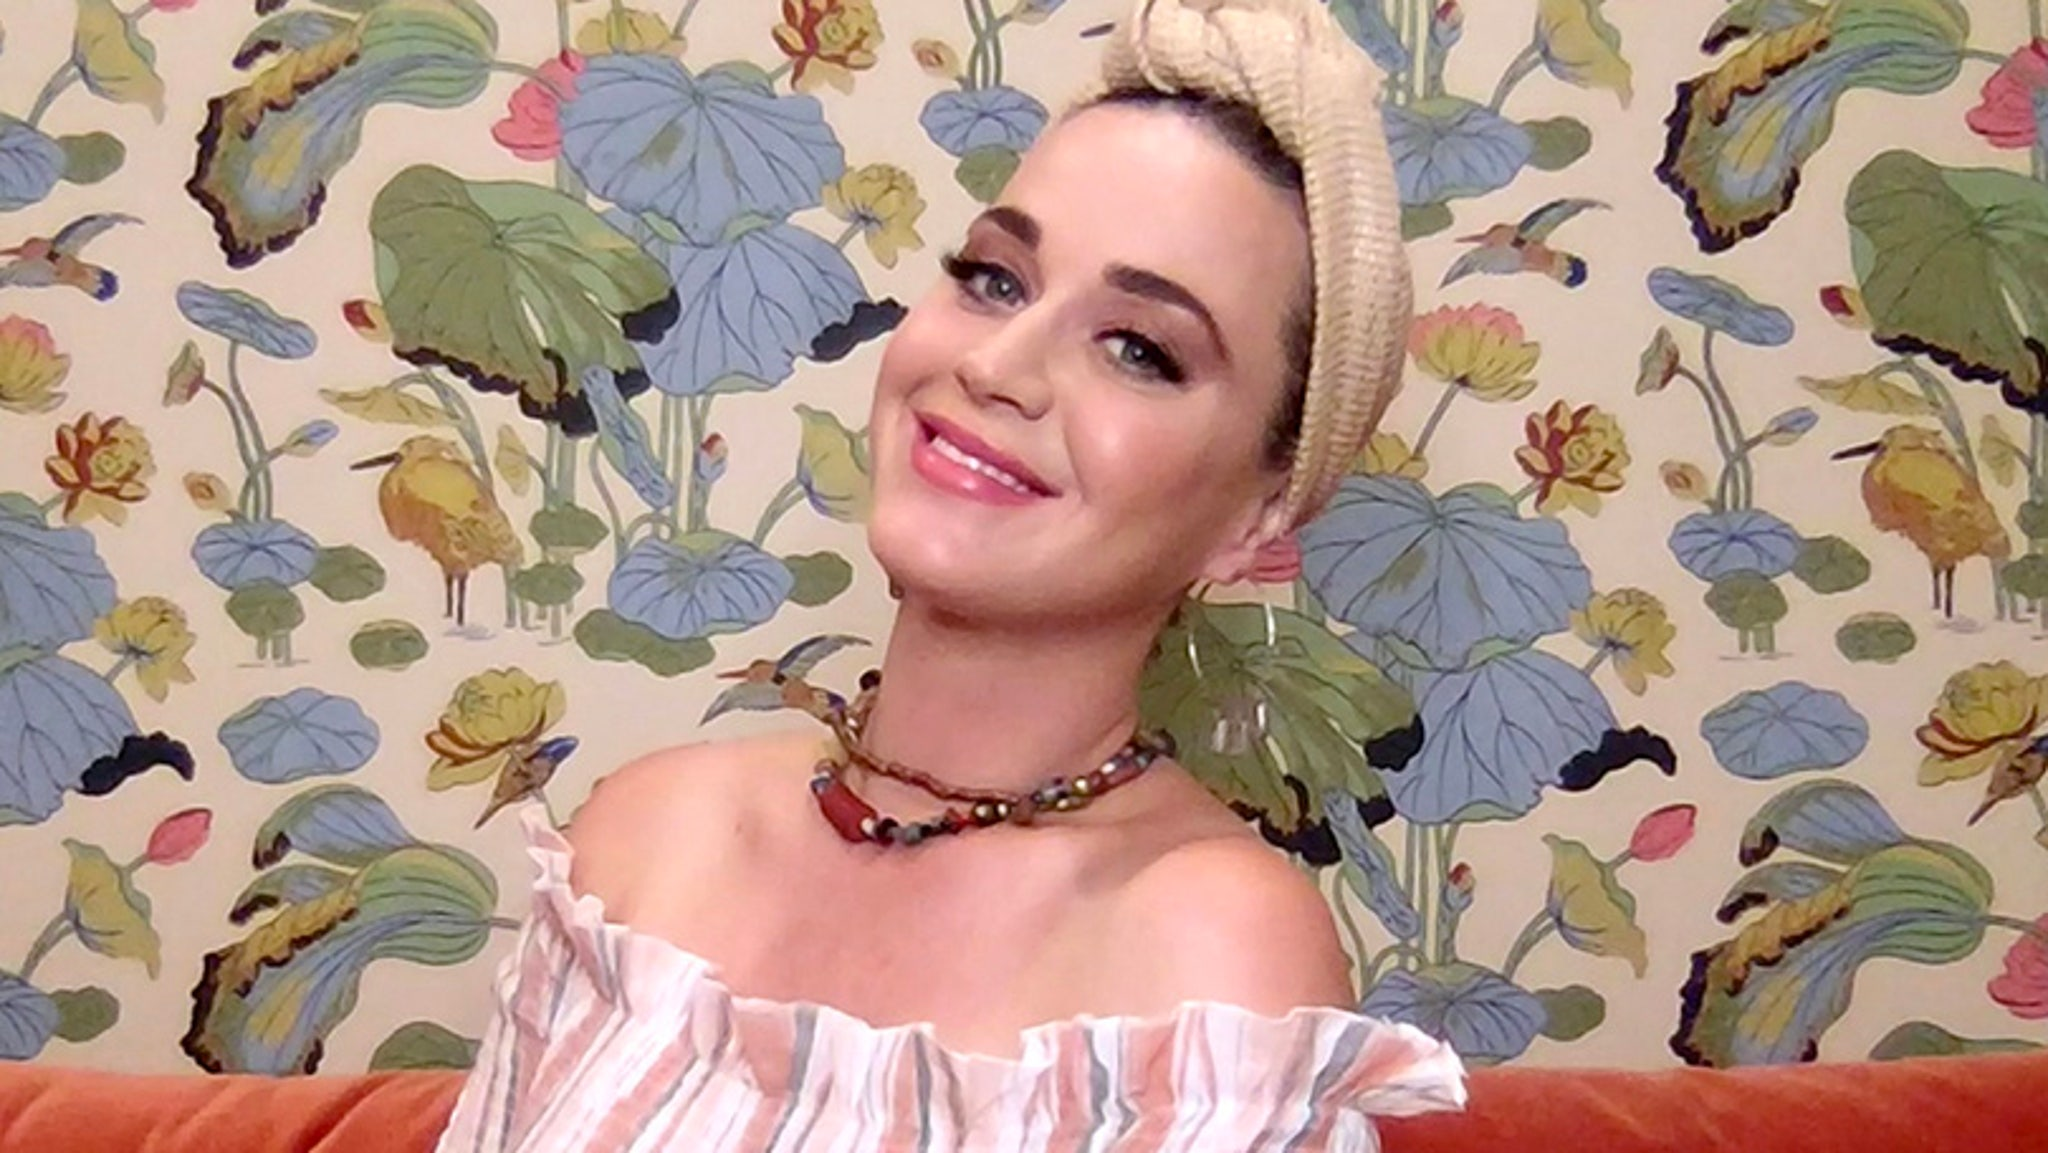 Katy Perry Slammed for Promoting Pro-Trump Father's Non-Partisan Clothing Line